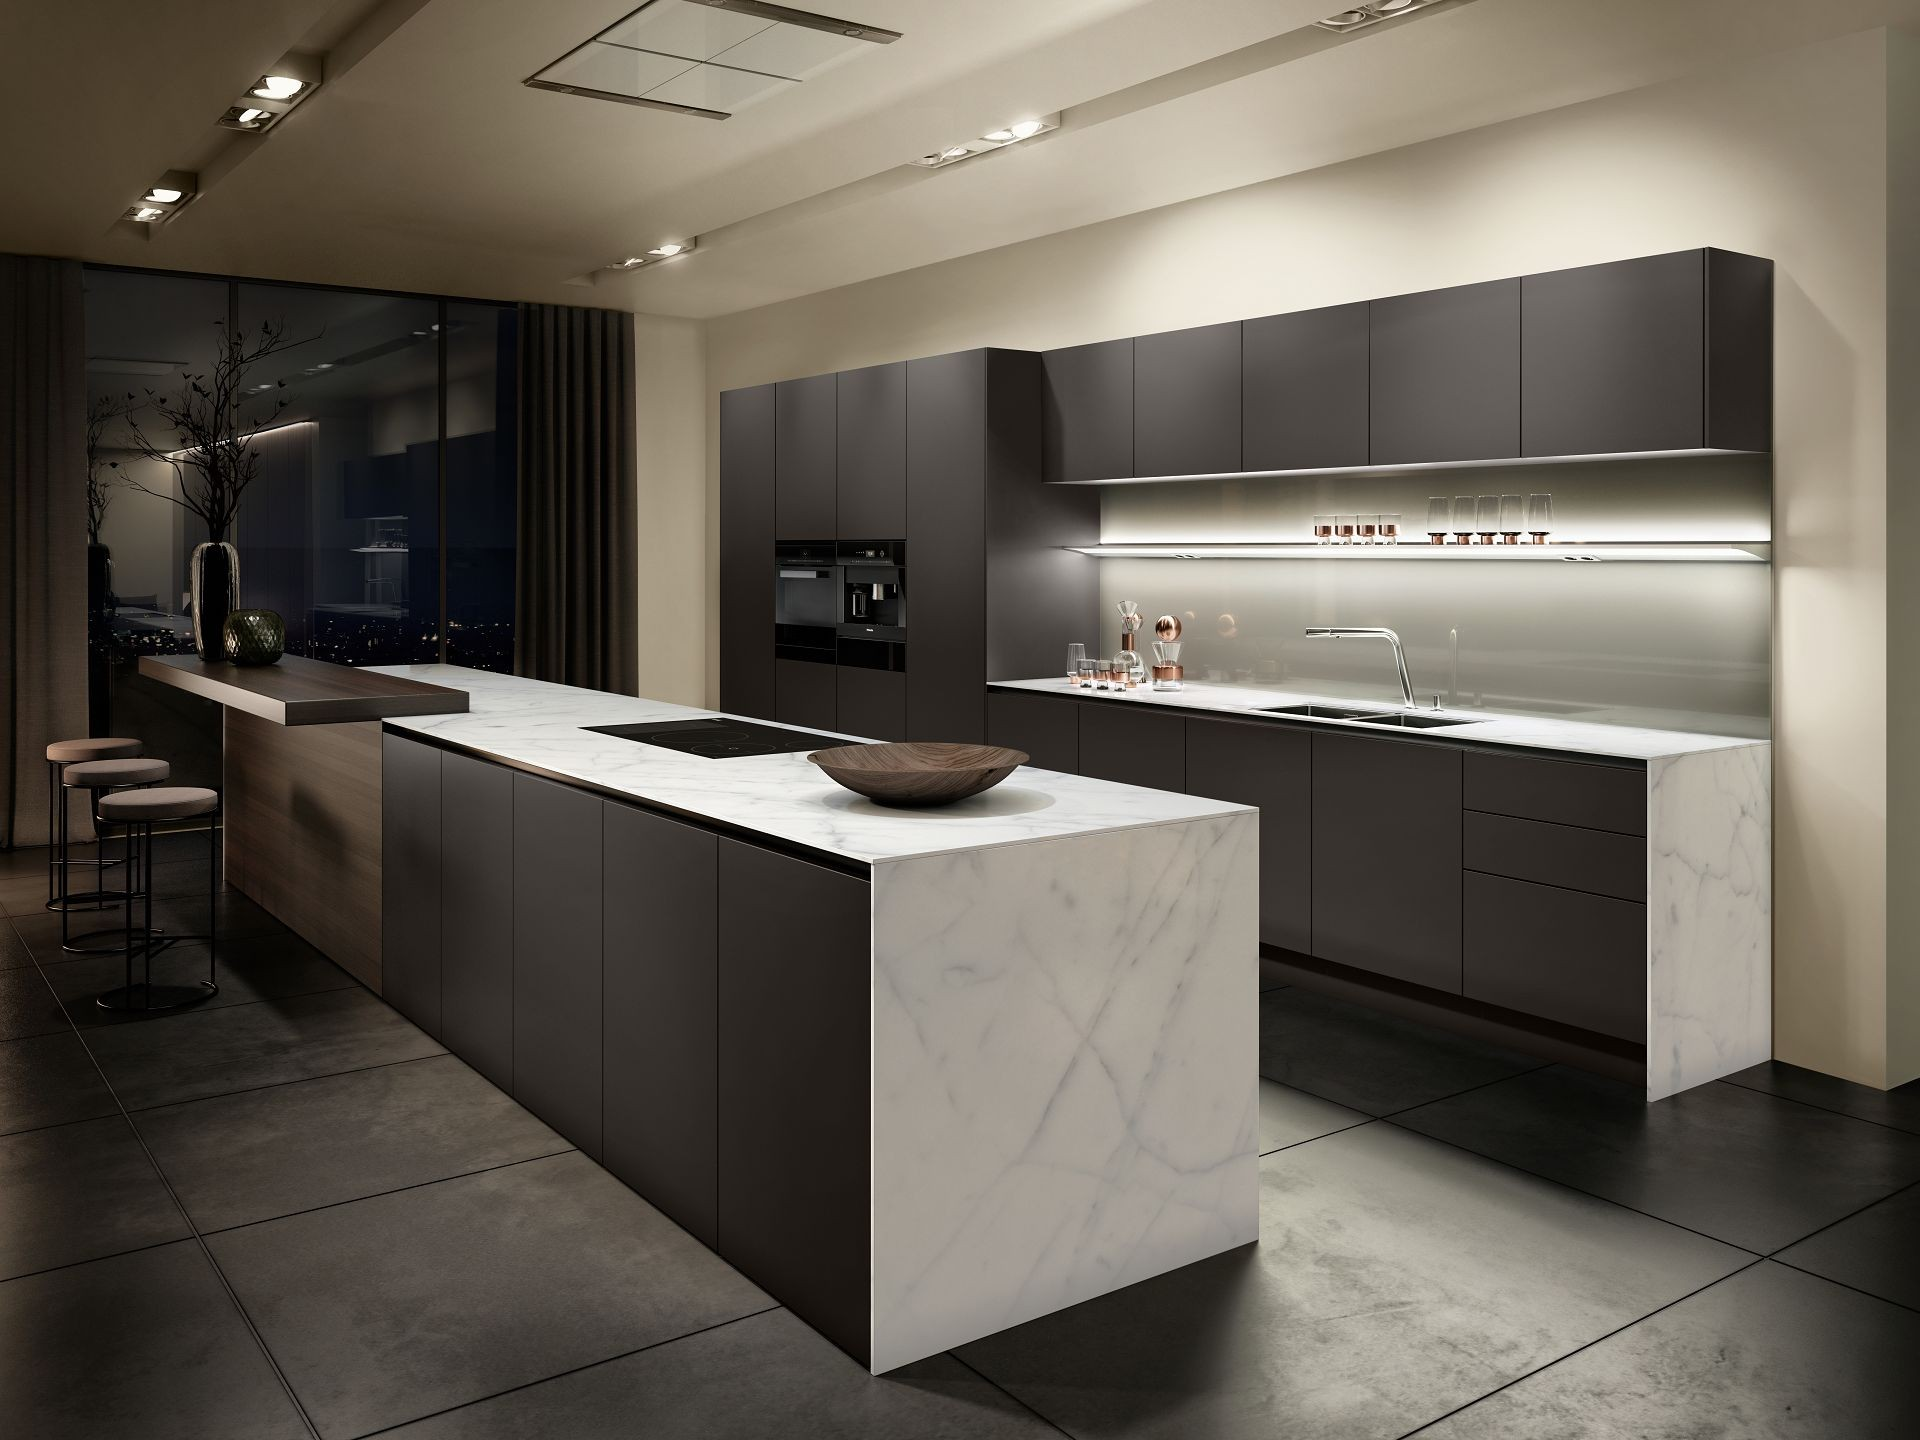 Desain kitchen set model u terbagus untuk siematic pure minimalist kitchen design maximum precision